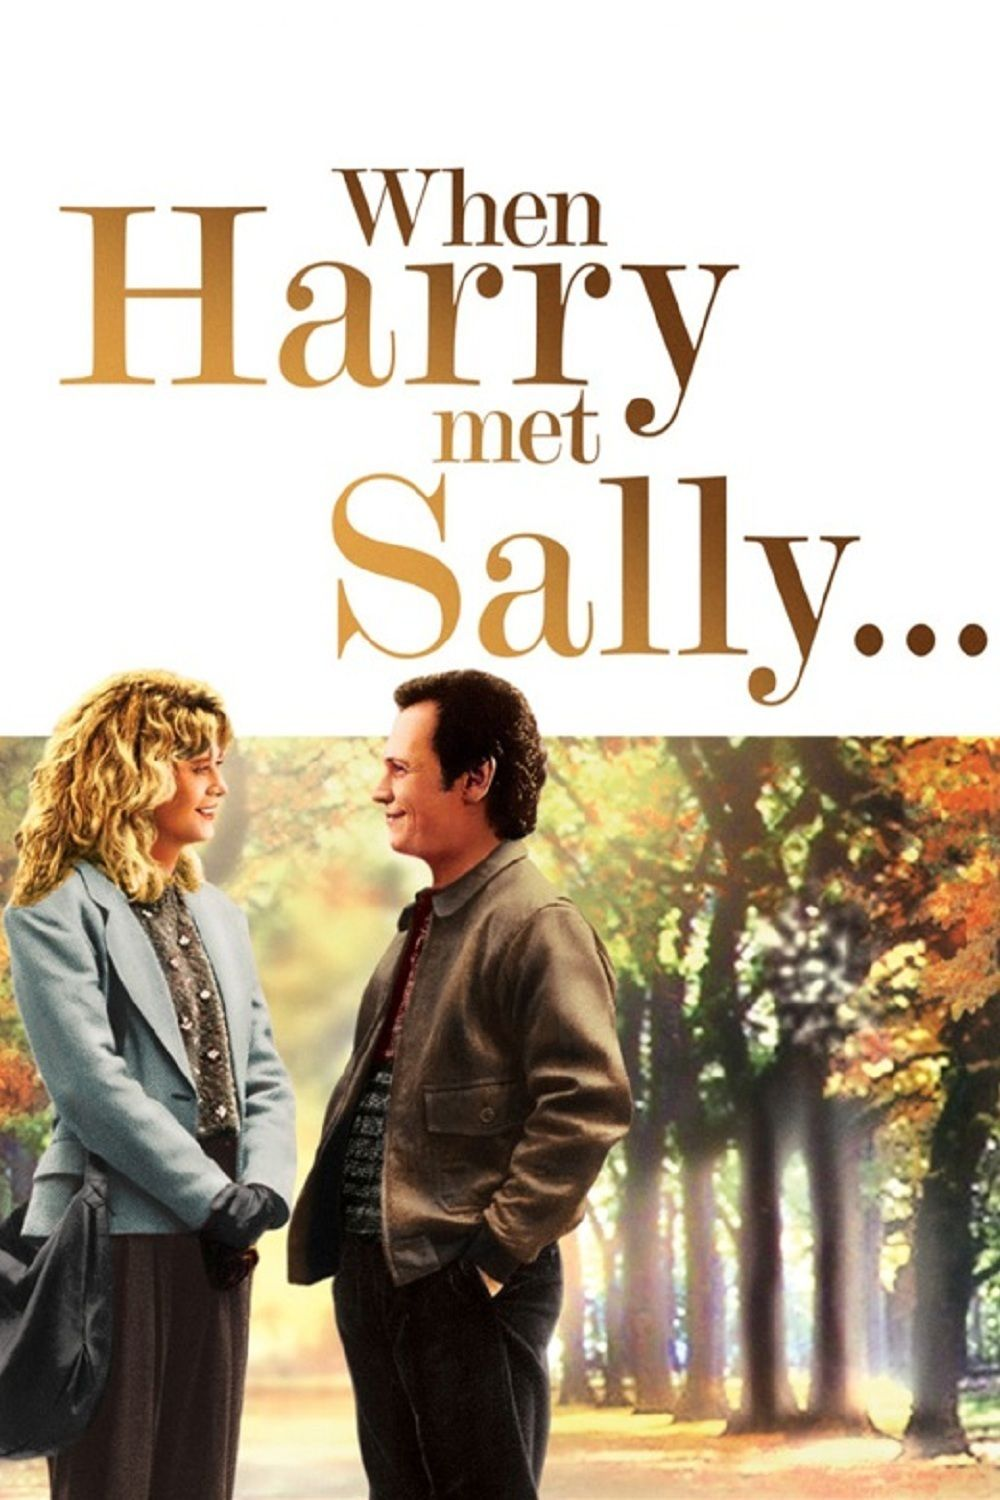 Citations film quand harry rencontre sally